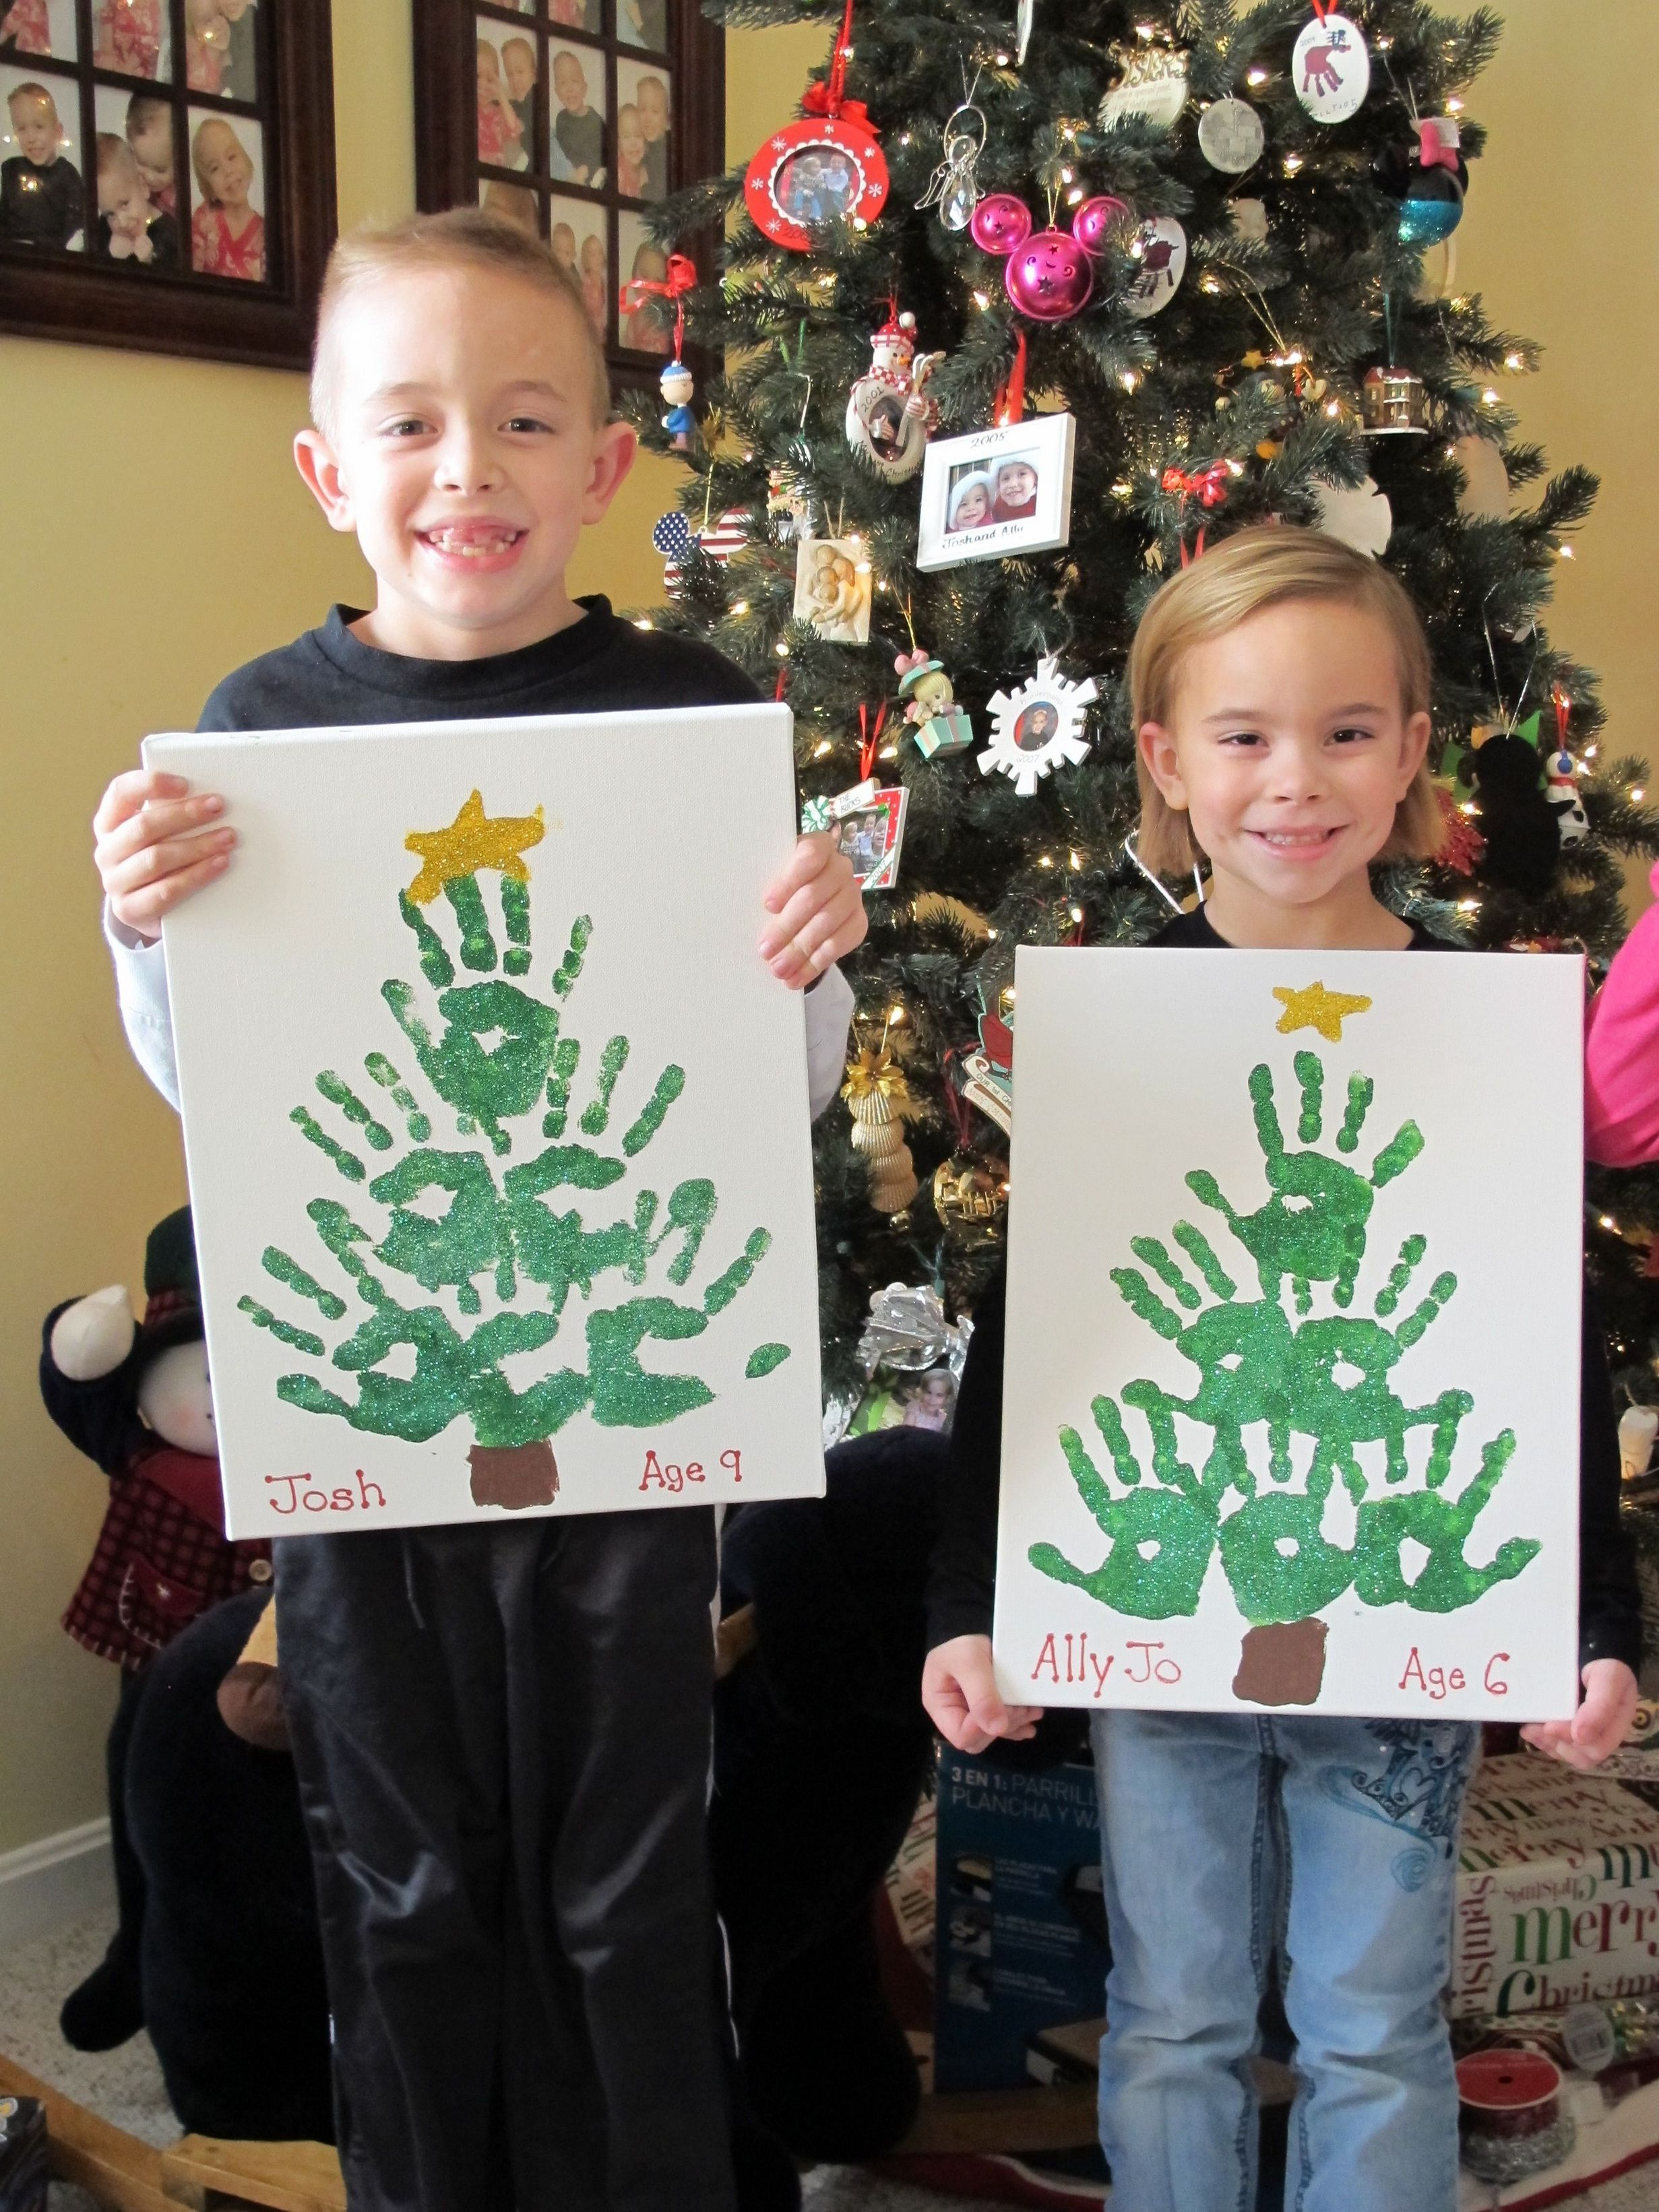 50 Inspira of Christmas Crafts for Kids